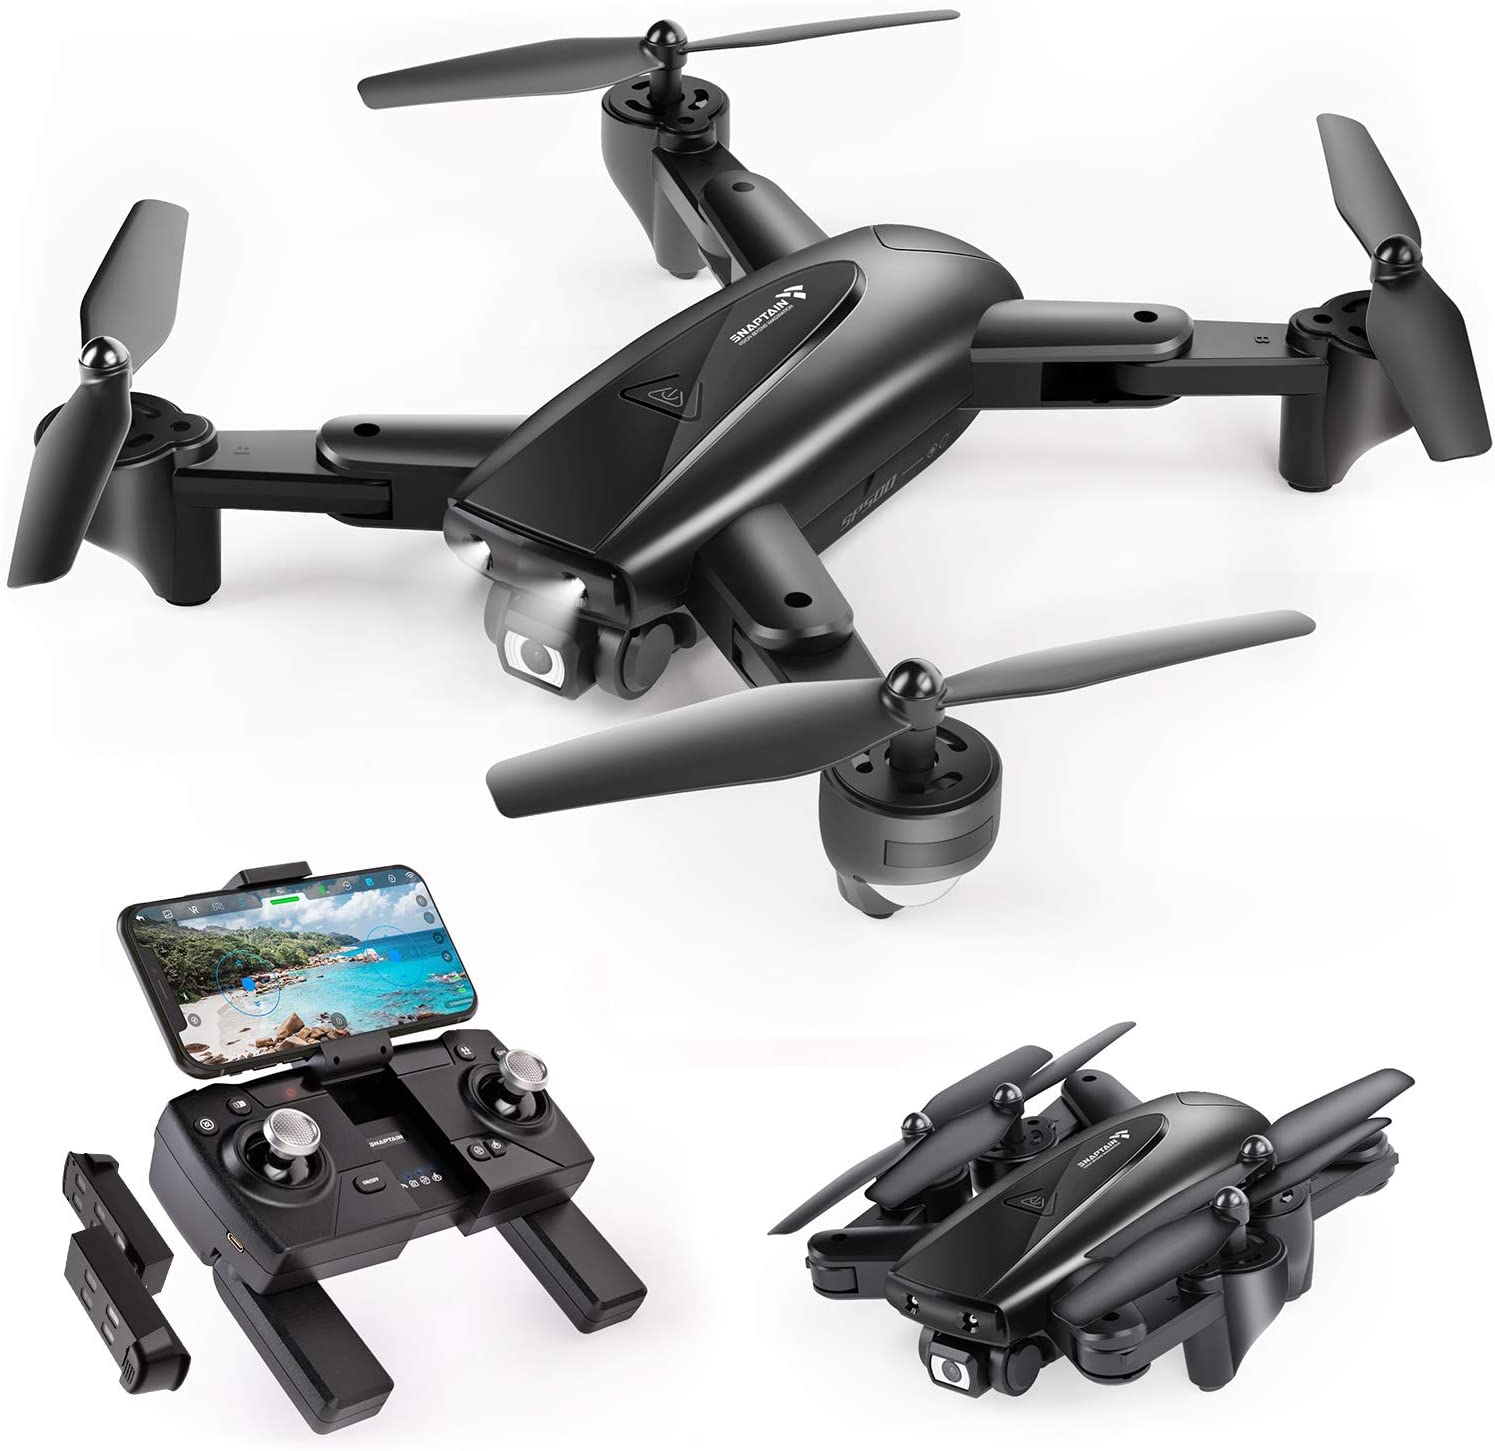 SNAPTAIN SP500 Foldable GPS FPV Drone with 1080P HD Camera Live Video for Beginners, RC Quadcopter with GPS Return Home, Follow Me, Gesture Control, Circle Fly, Auto Hover & 5G WiFi Transmission